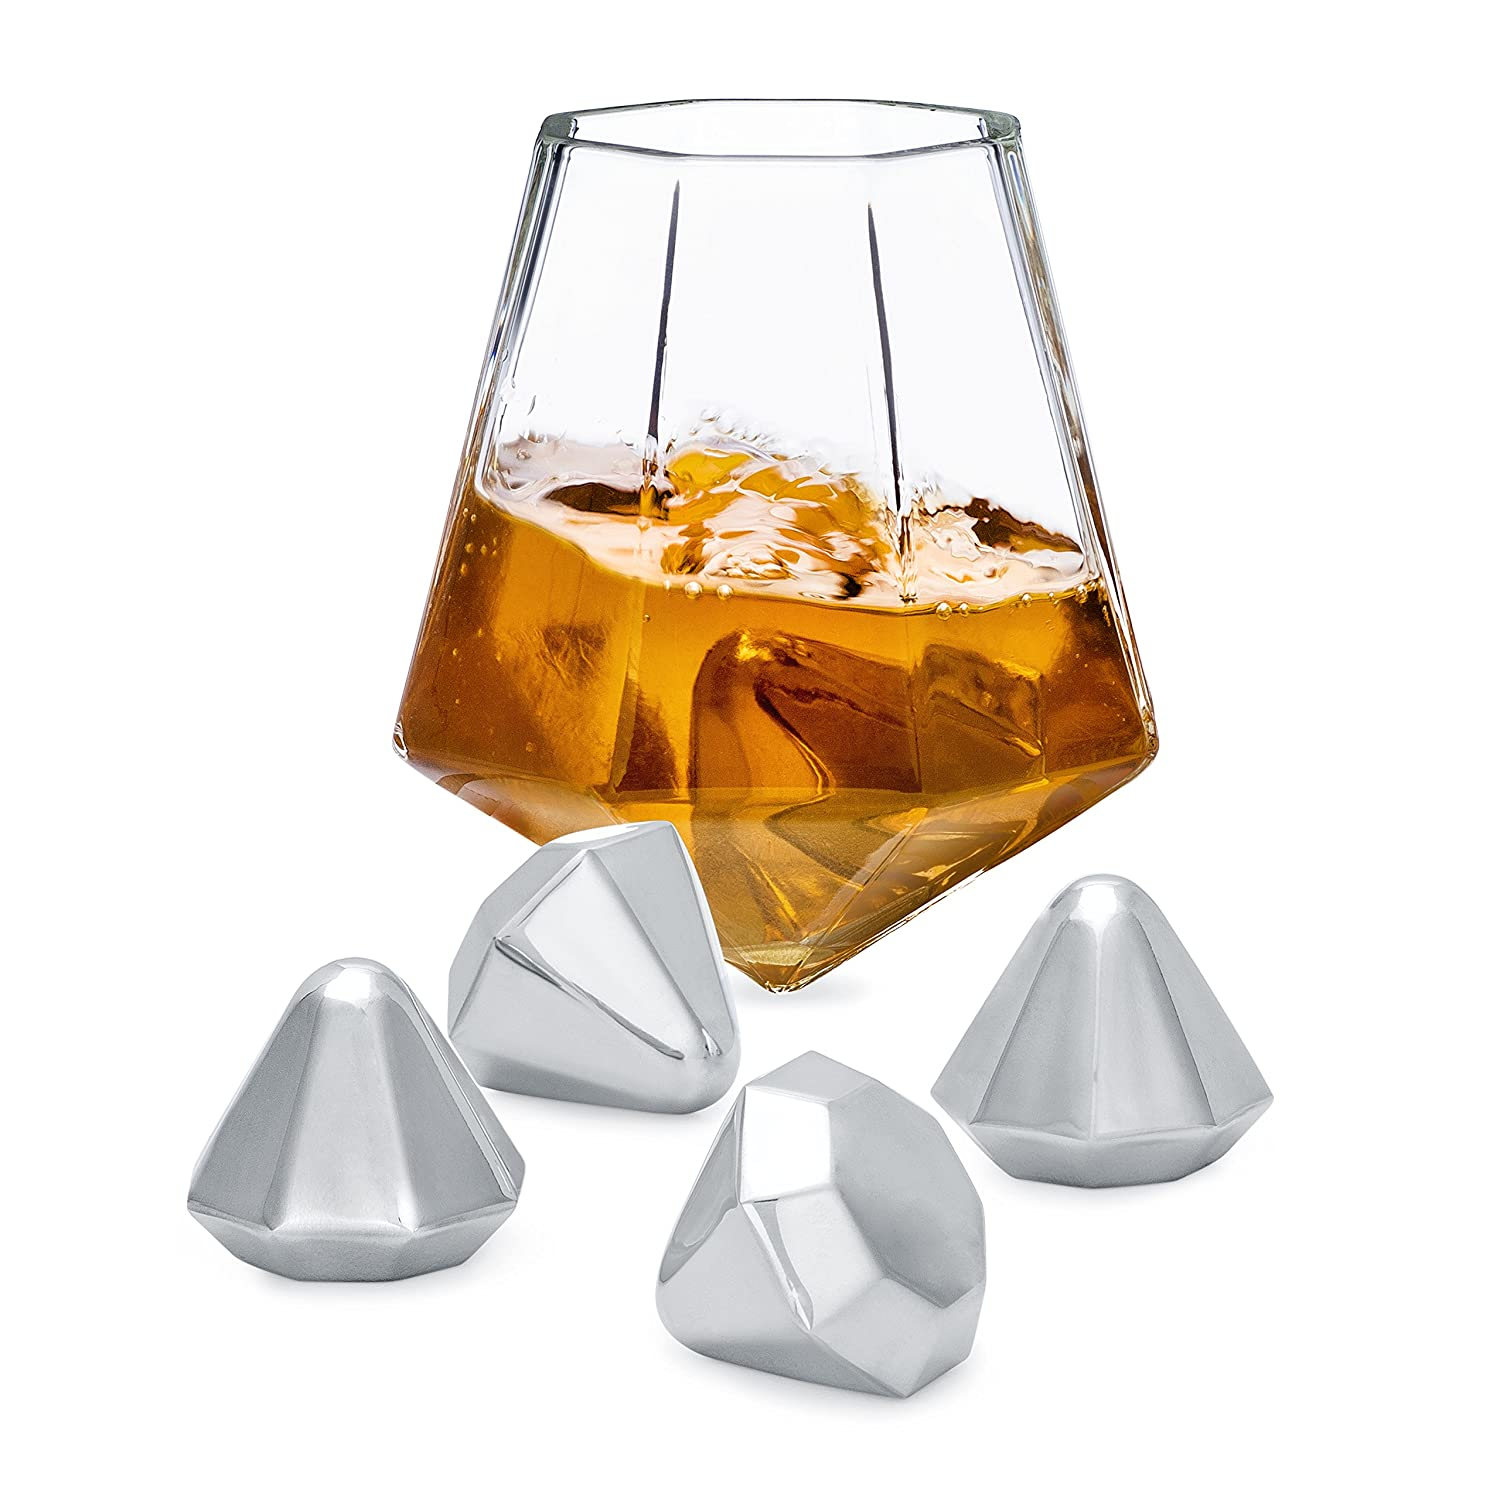 Set of 4 Stones Premium Designer Tumblers and Reusable Stainless Steel Ice Cubes Gift Boxed Set of 2 Glasses Dragon Glassware Diamond Whiskey Glasses and Diamond Chilling Stones